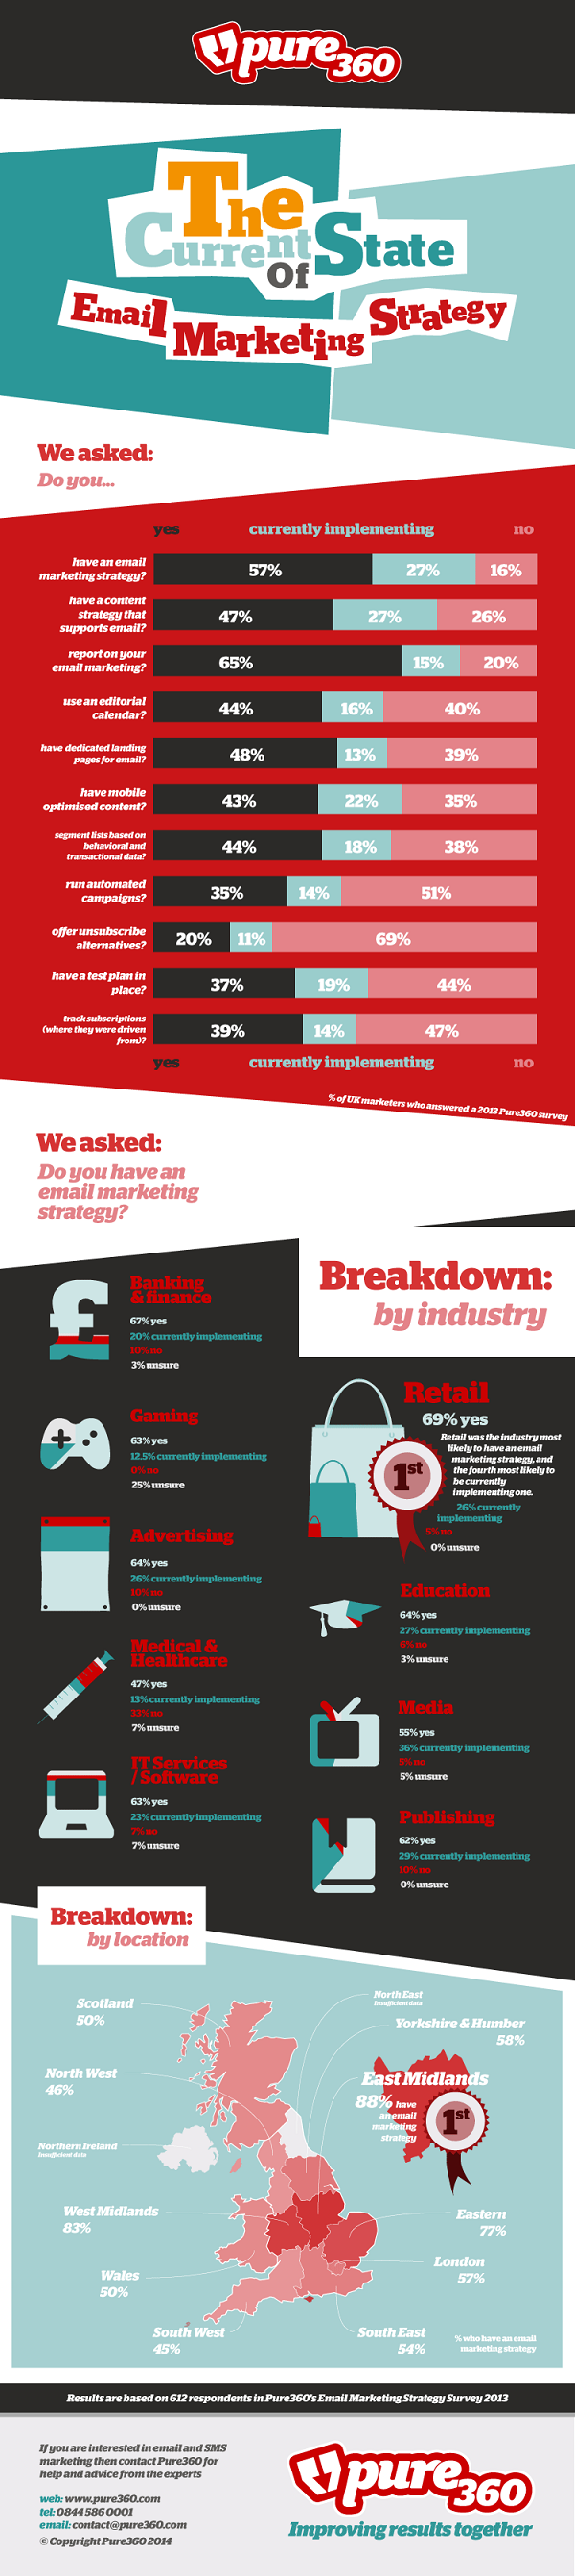 Pure360: Email Marketing Best Practices 2014